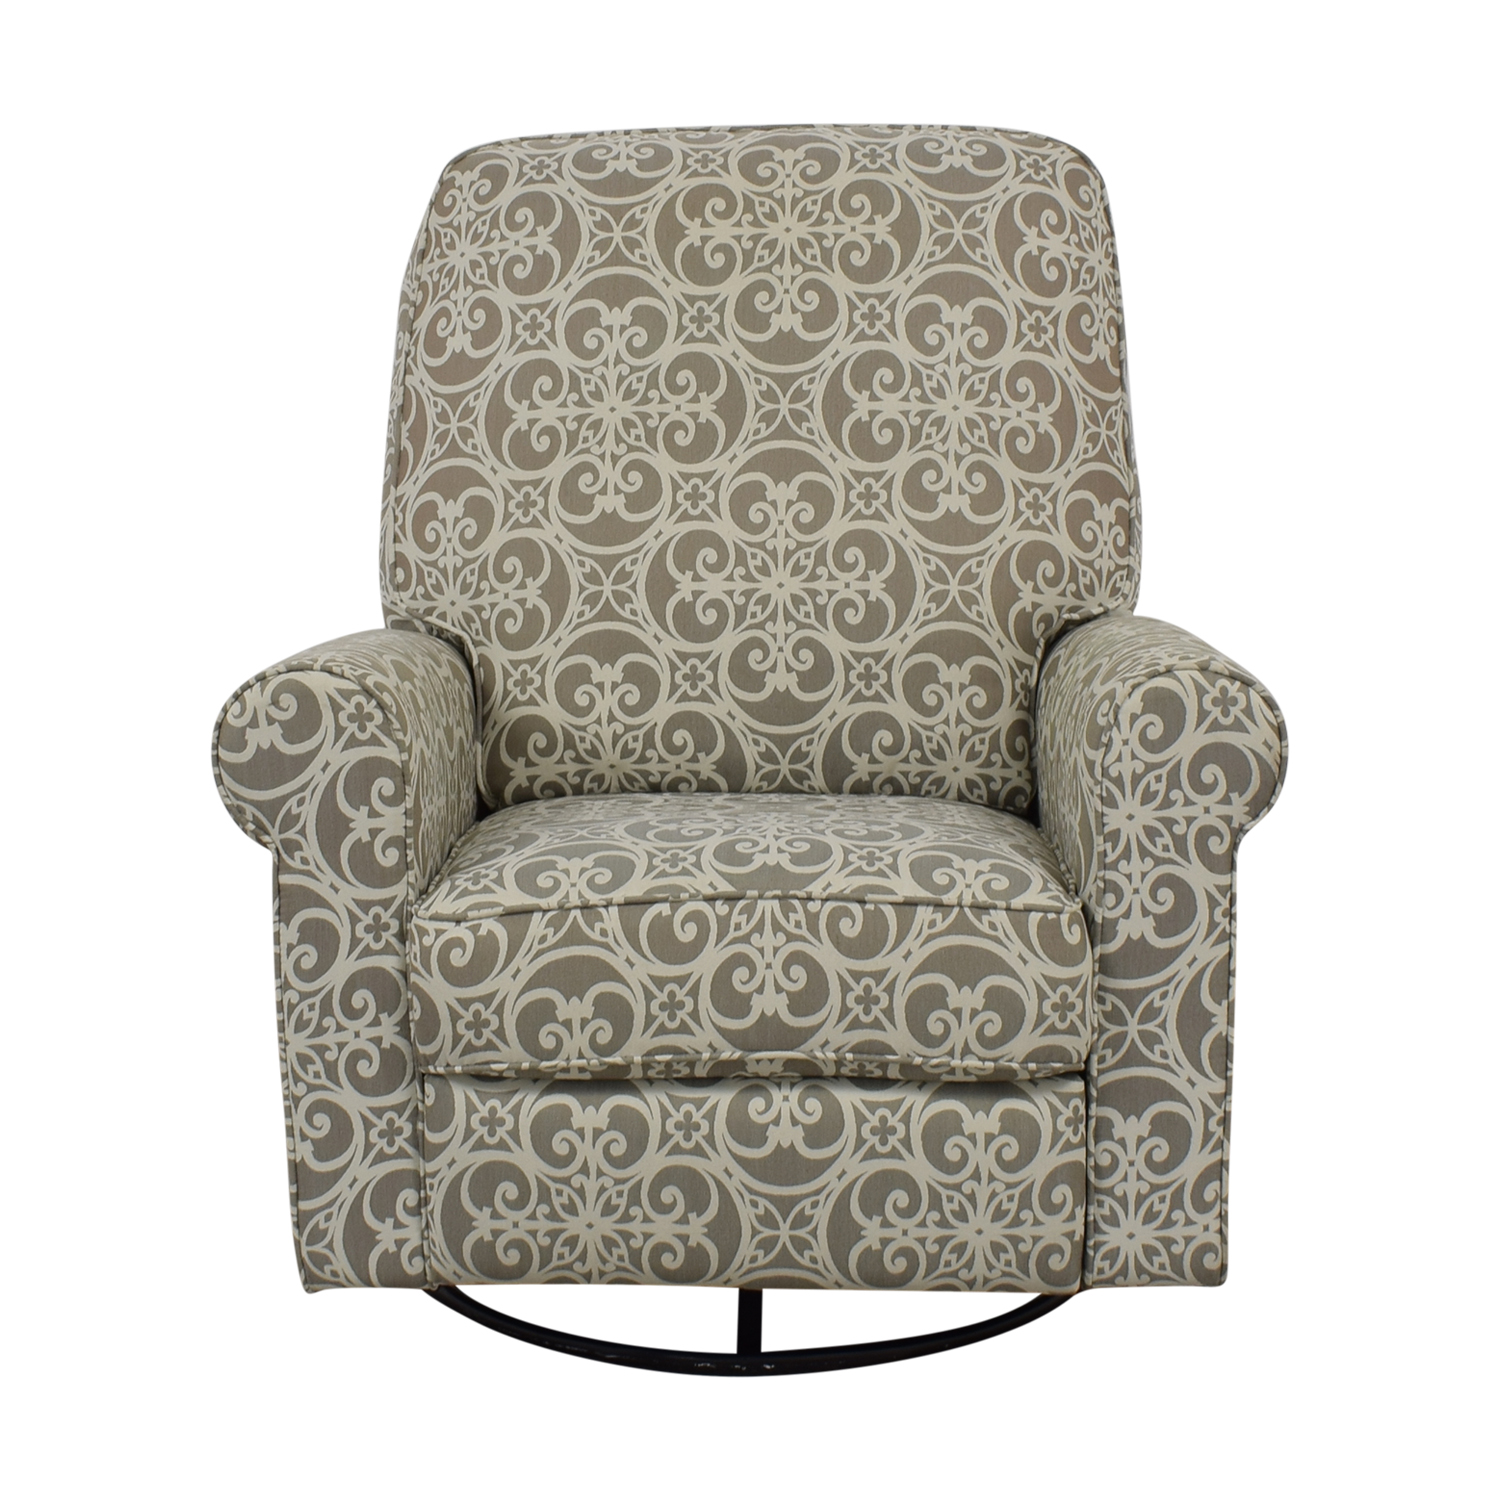 Abbyson Living Abbyson Living Grey and White Swivel Glider Rocking Chair on sale